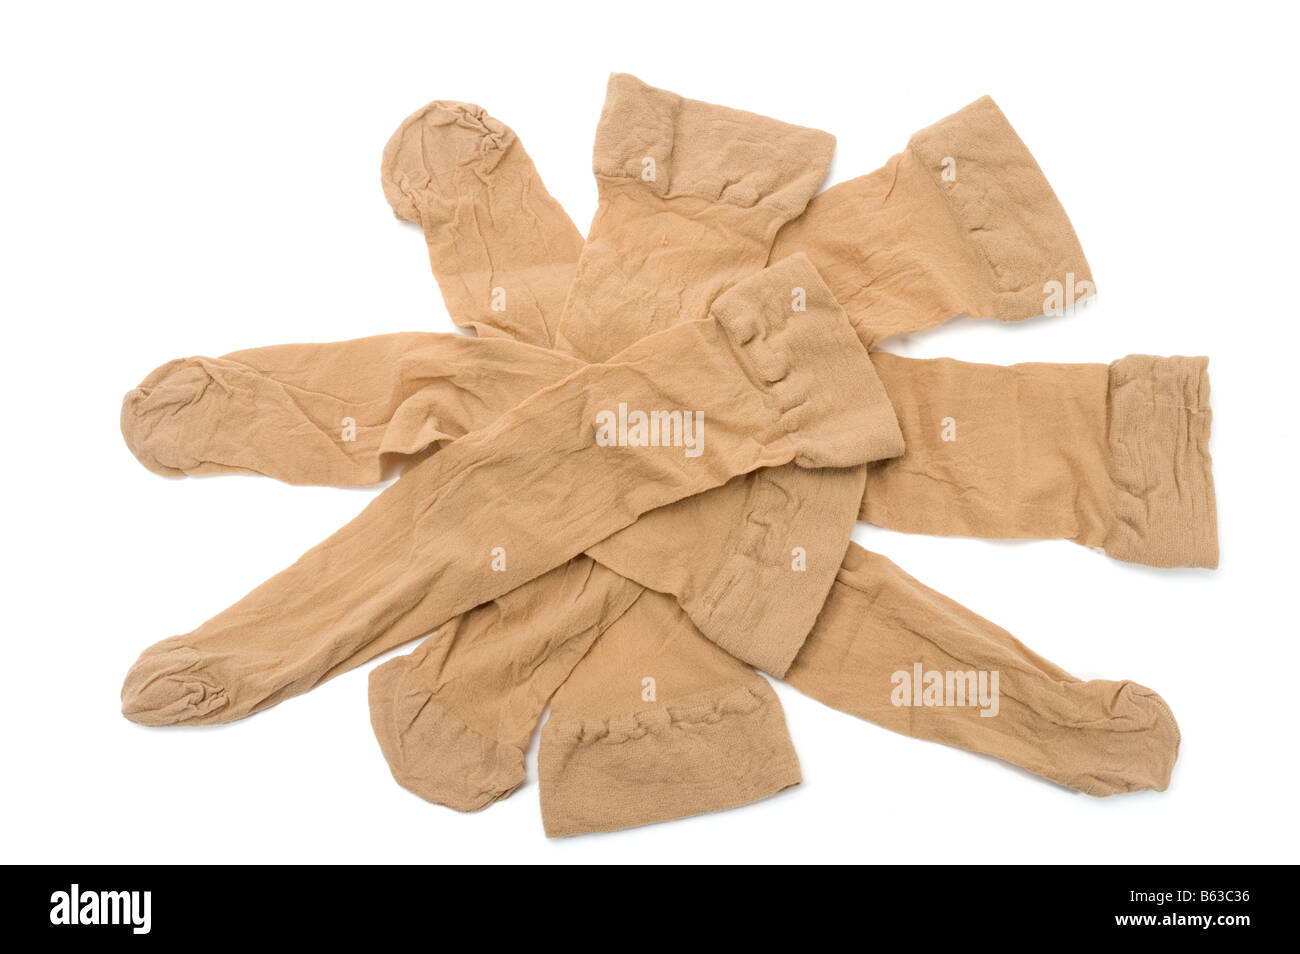 Pile of 'knee length' nylon tights - Stock Image